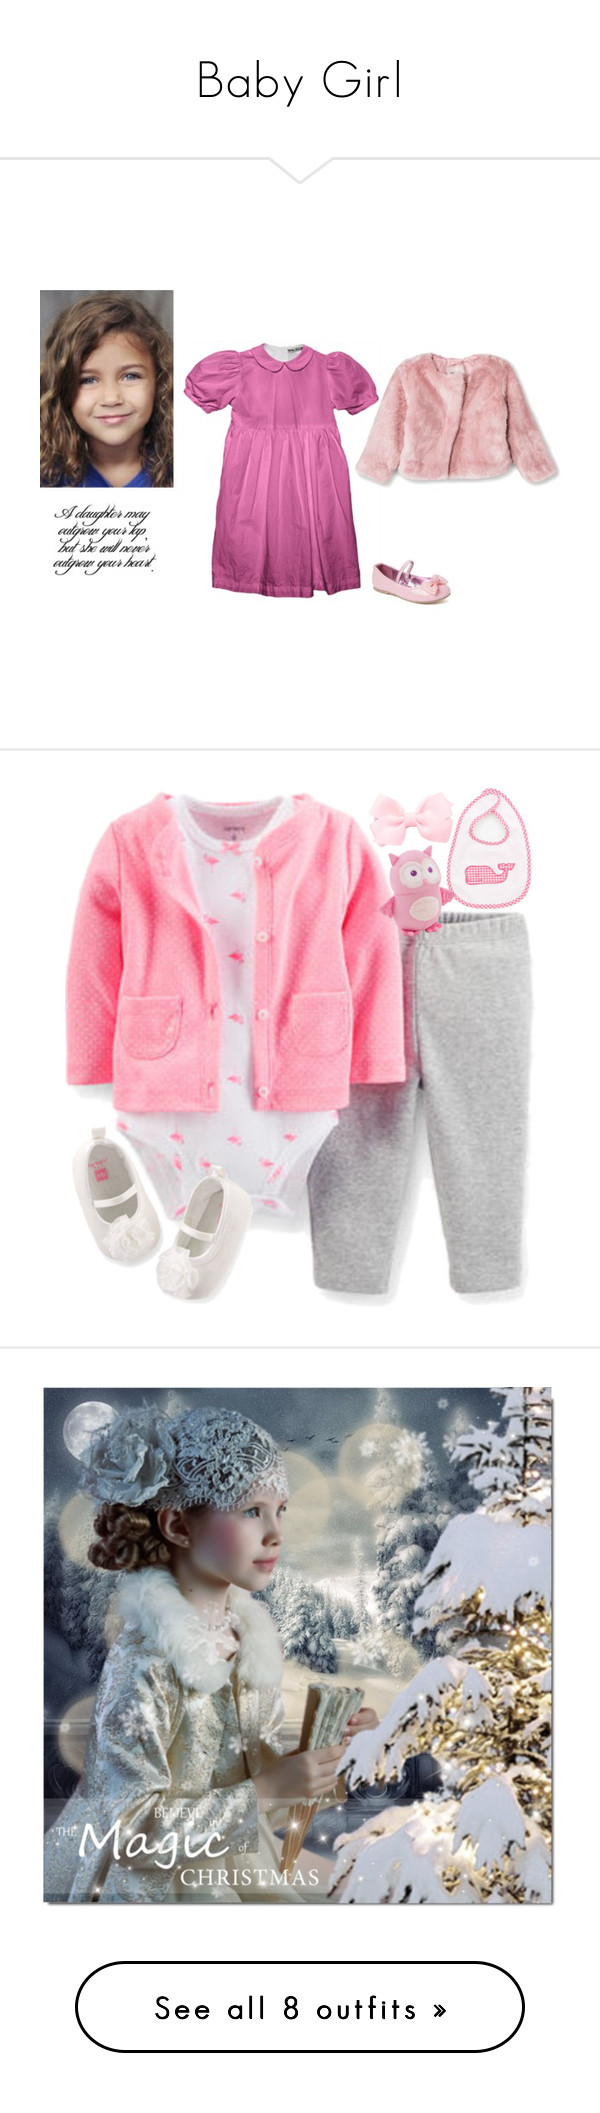 """""""Baby Girl"""" by rebelynne ❤ liked on Polyvore featuring Carter's, art, artset, christmas2014, amightygirl, theartistsloft, Marie Chantal, Uniqlo, Once Upon a Time and PATH"""